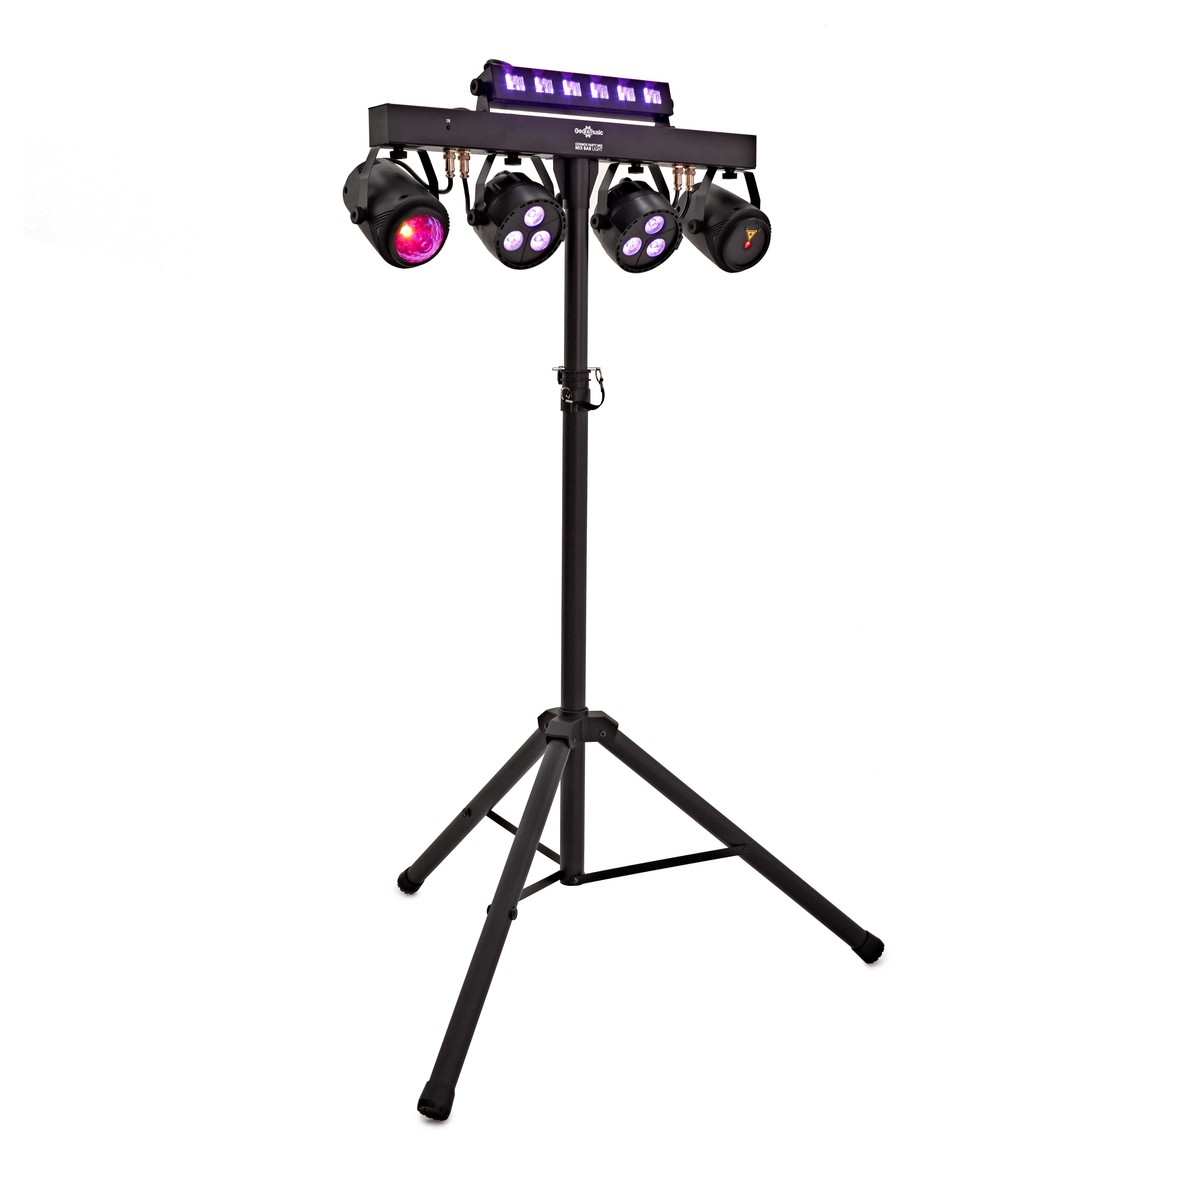 Cosmos Mix Party Lighting System by Gear4music